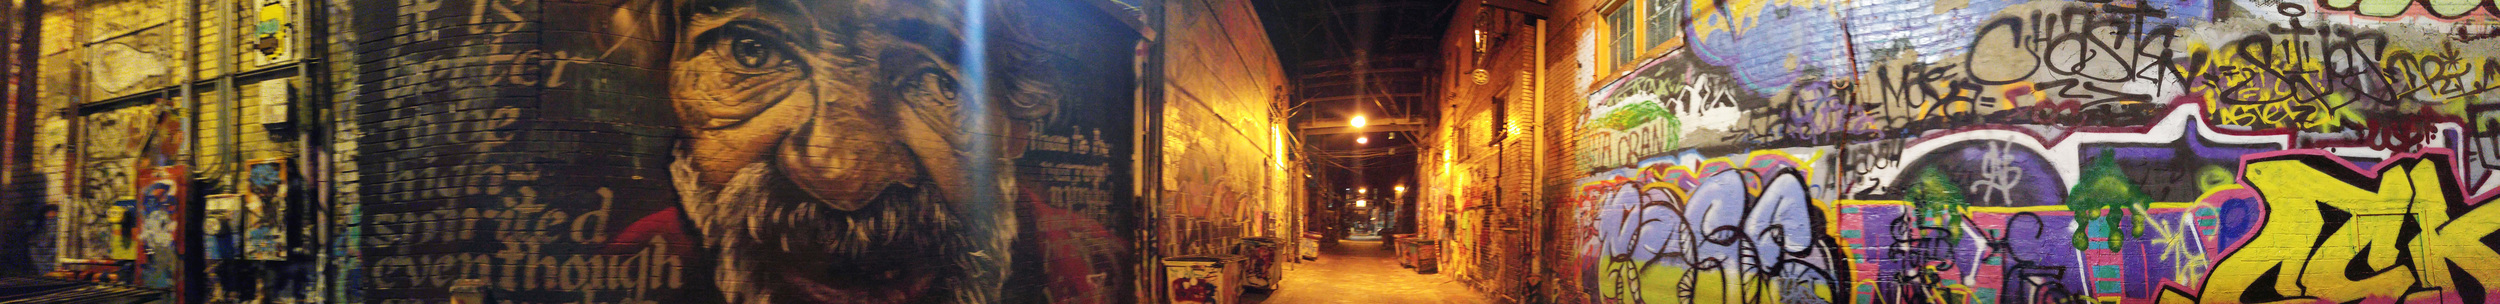 """Pano photo of  """"Graffiti Alley"""" in downtown Rapid City ."""